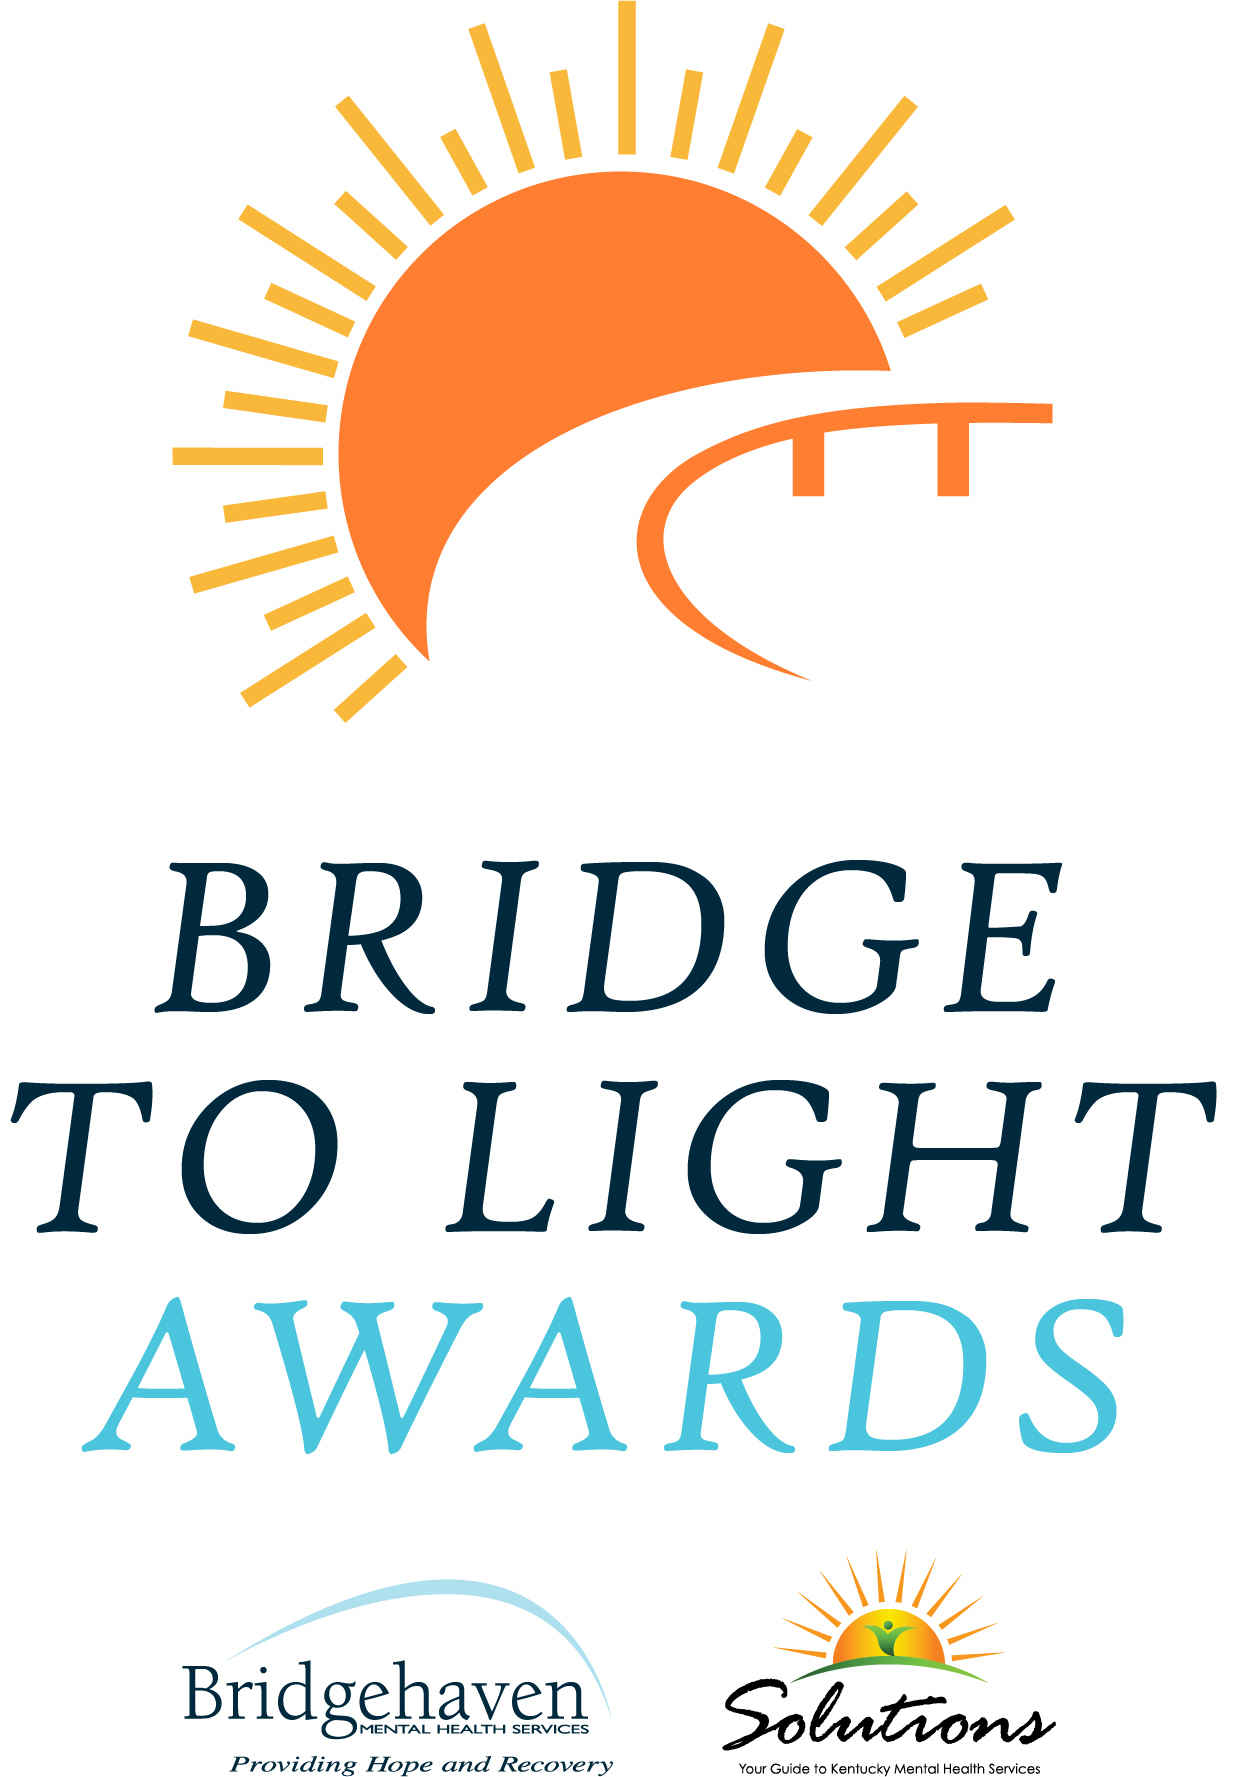 Second Annual Bridgehaven/Solutions Bridges to Light Awards image